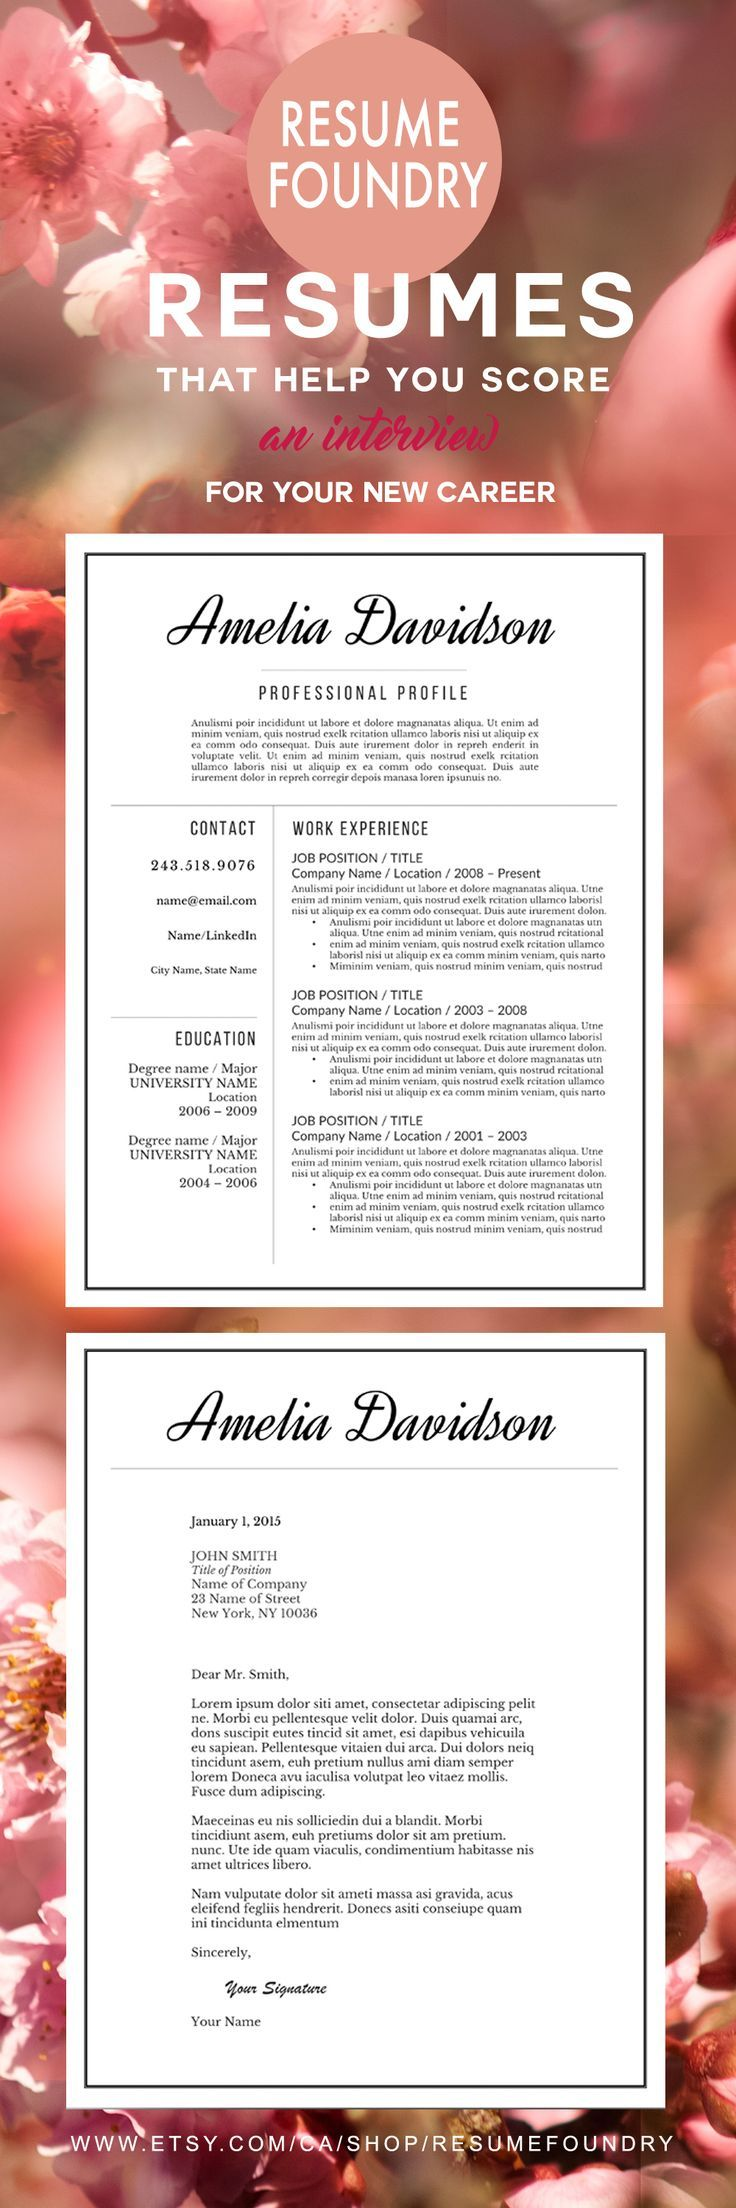 Beautiful resume template from Resume Foundry 355